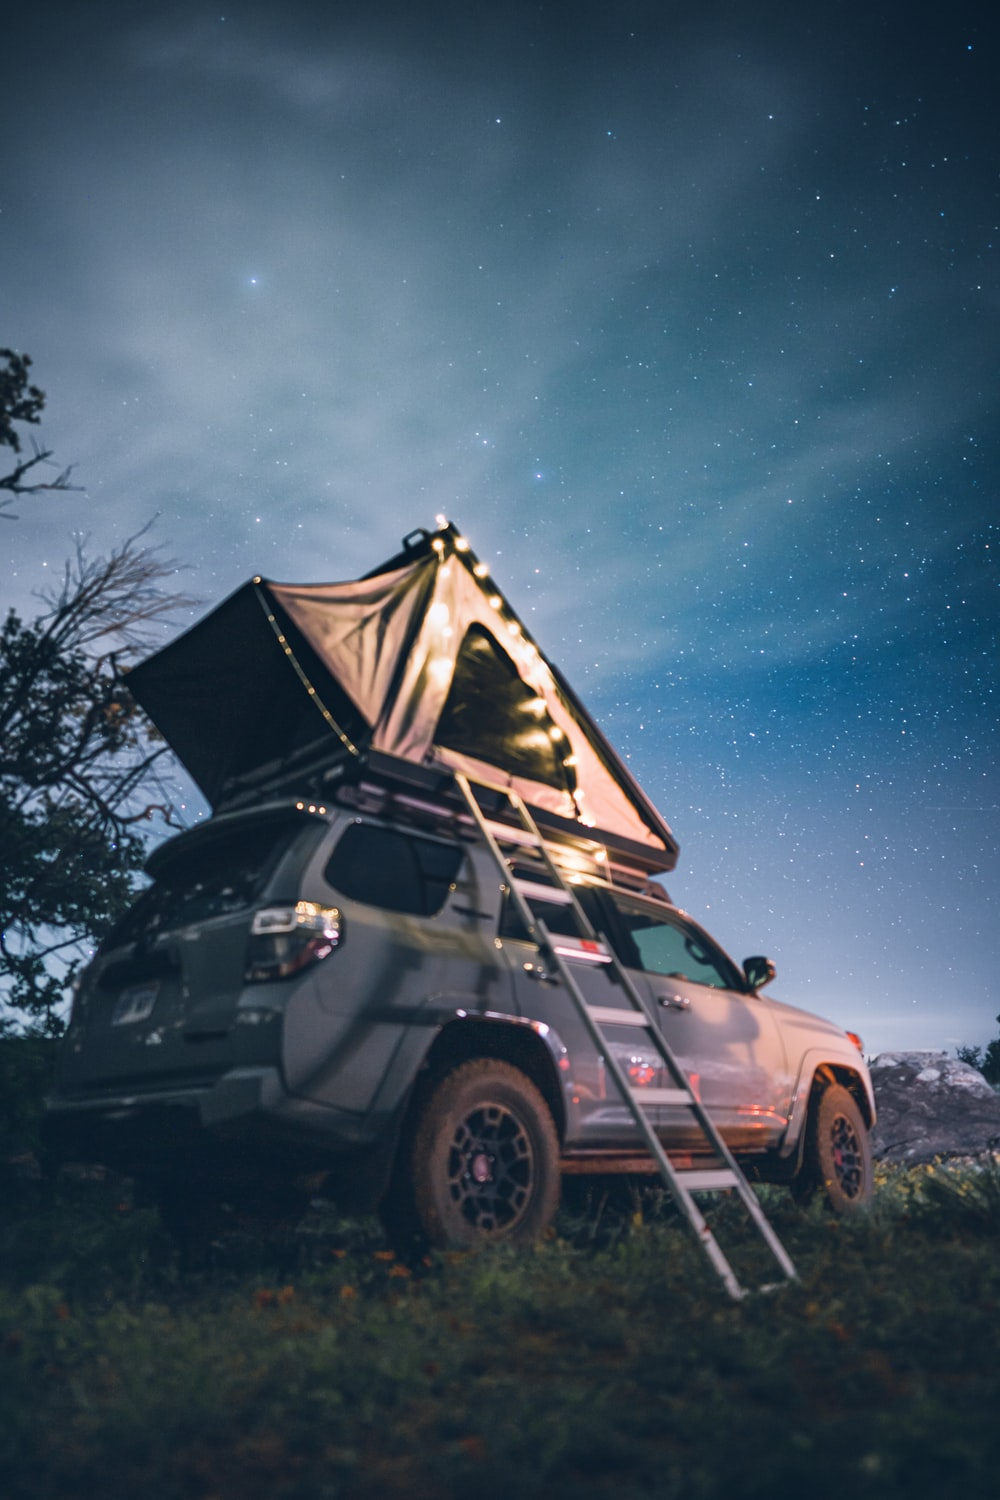 white suv in front of tent during night time